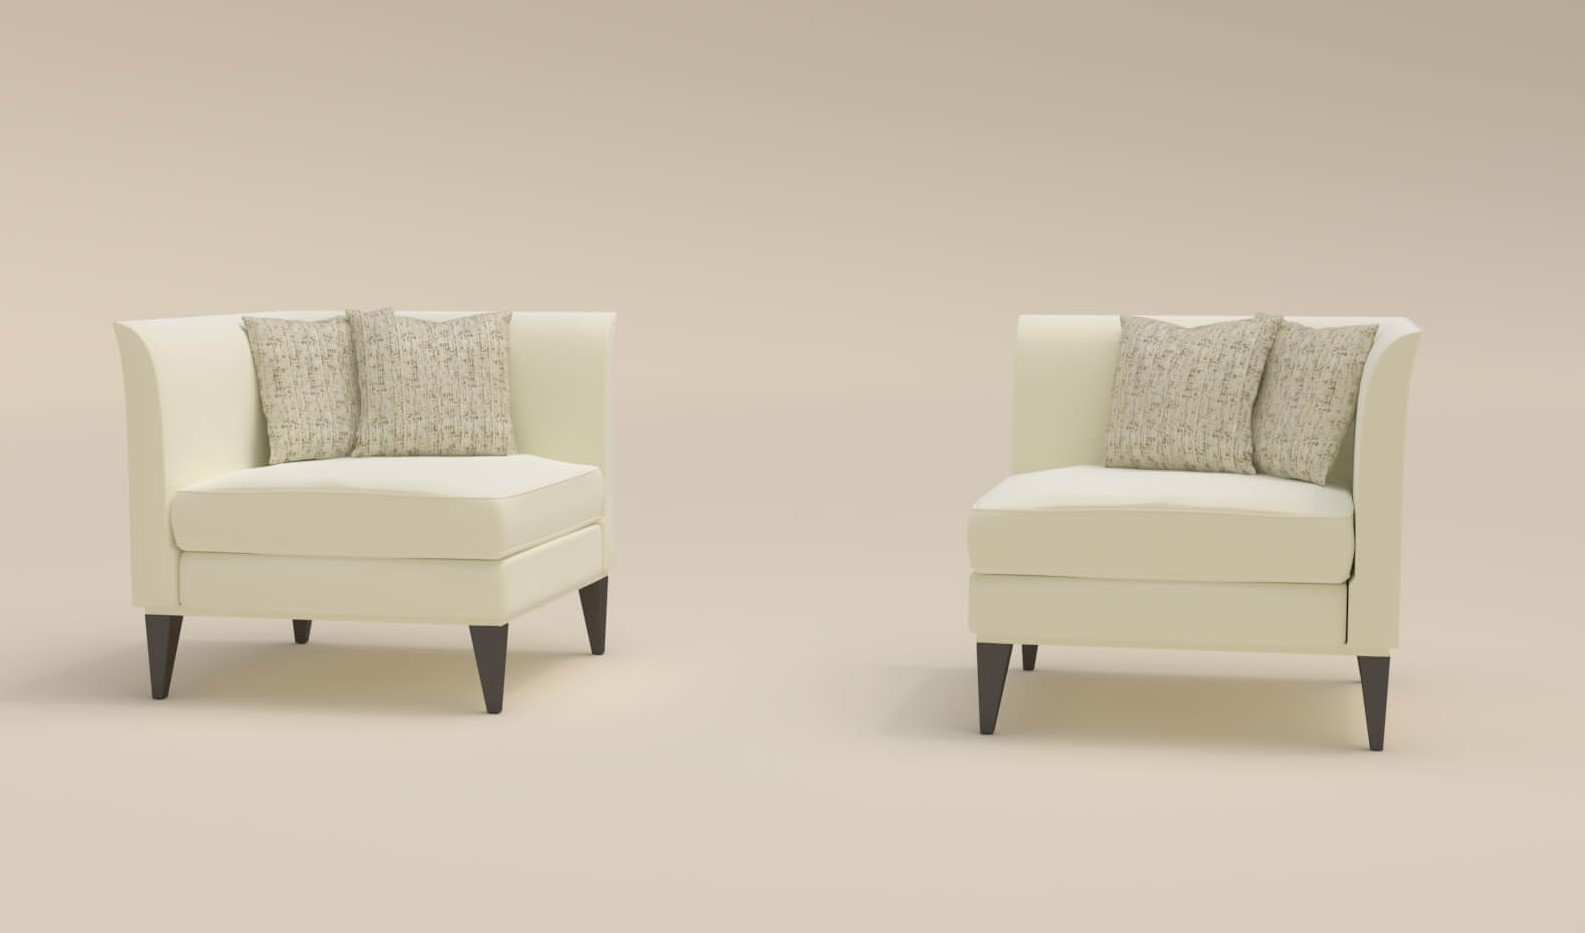 3D Product Rendering - Designing Furniture for Interior Designers and Manufacture